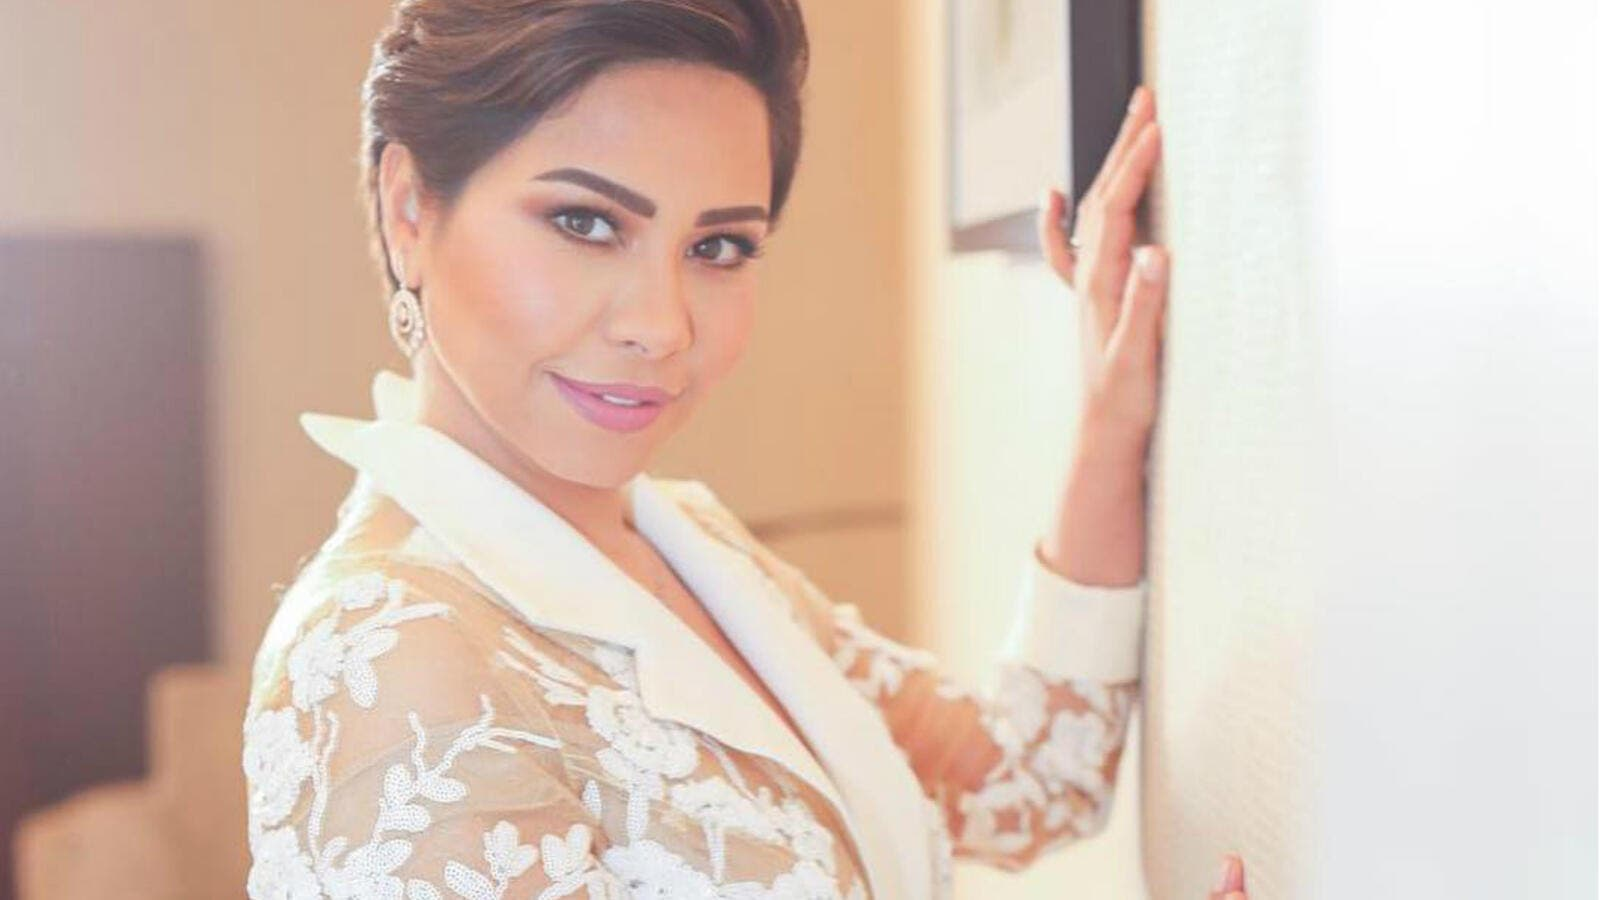 Sherine confirmed in several television interviews that she wishes to have a child from her husband Hossam Habib in the near future